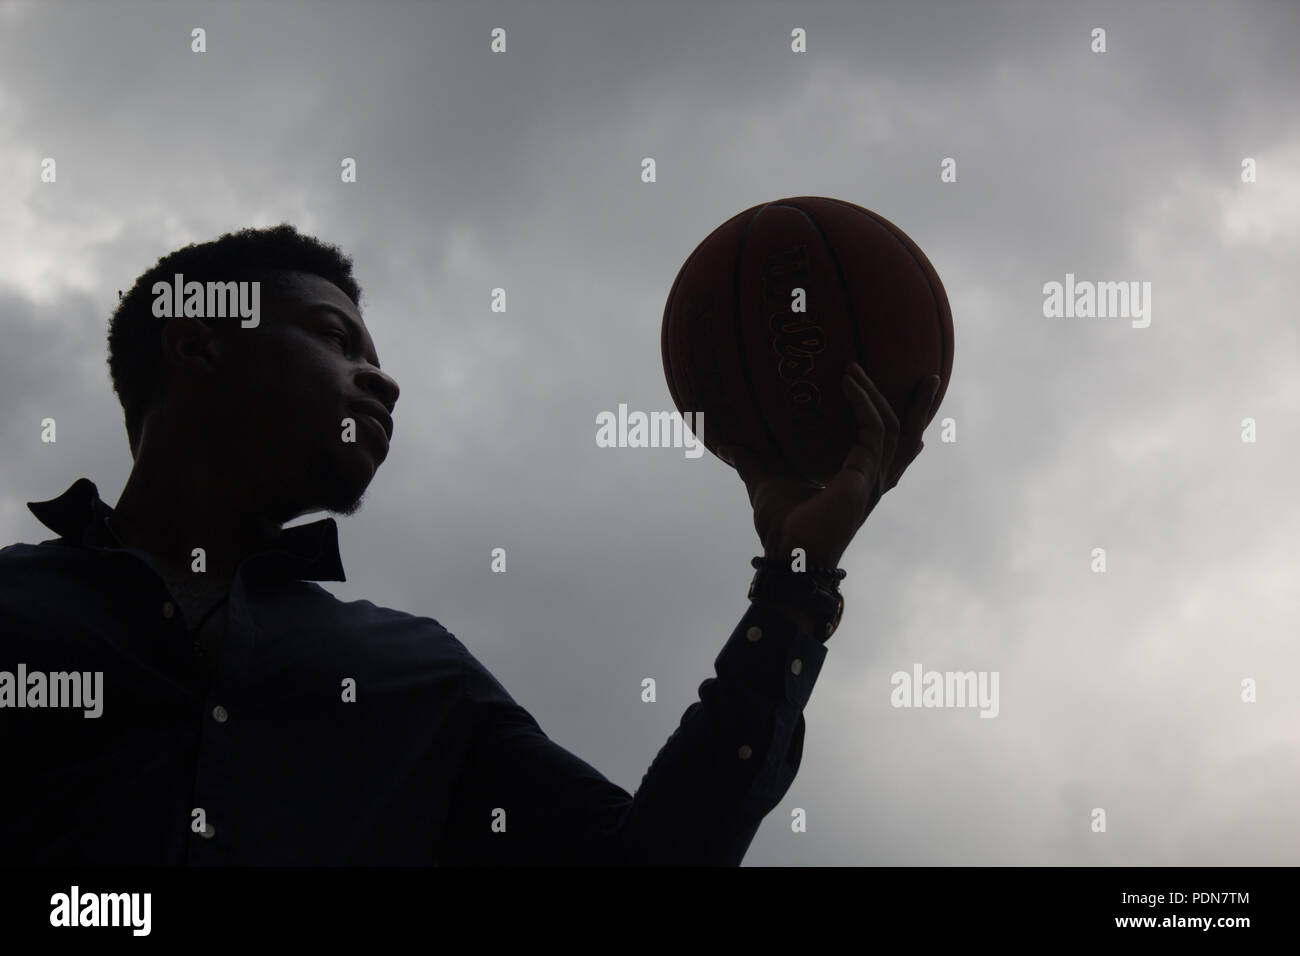 Young man starting life anew. Photos have a release. - Stock Image